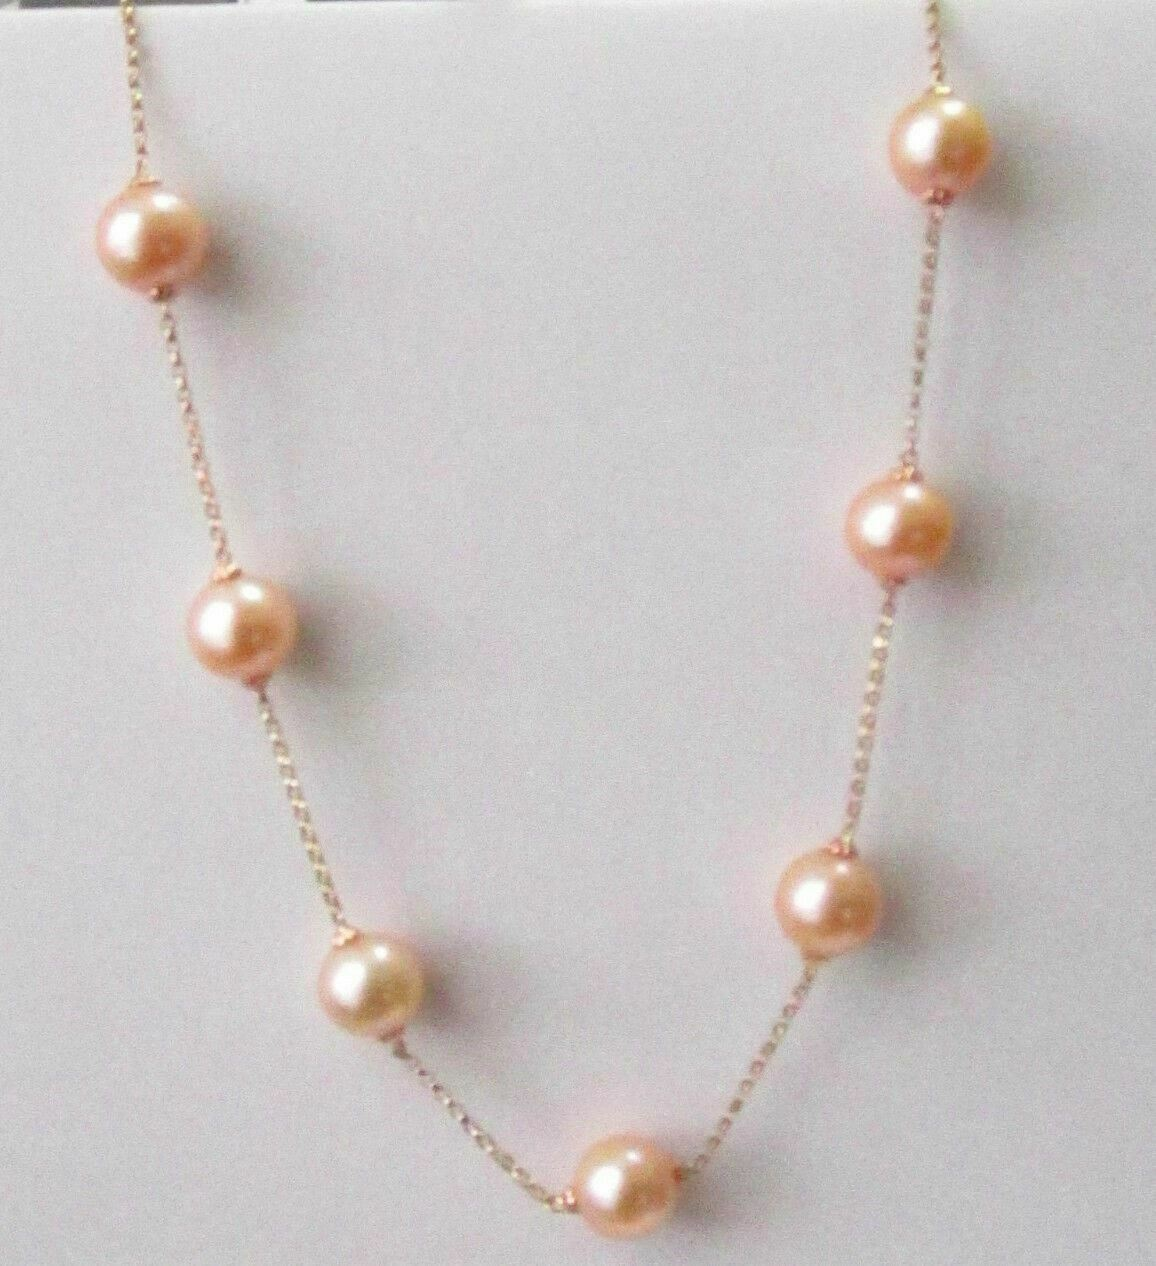 20 Inch Gold Freshwater Pearl String Necklace 10mm 14k Rose Gold